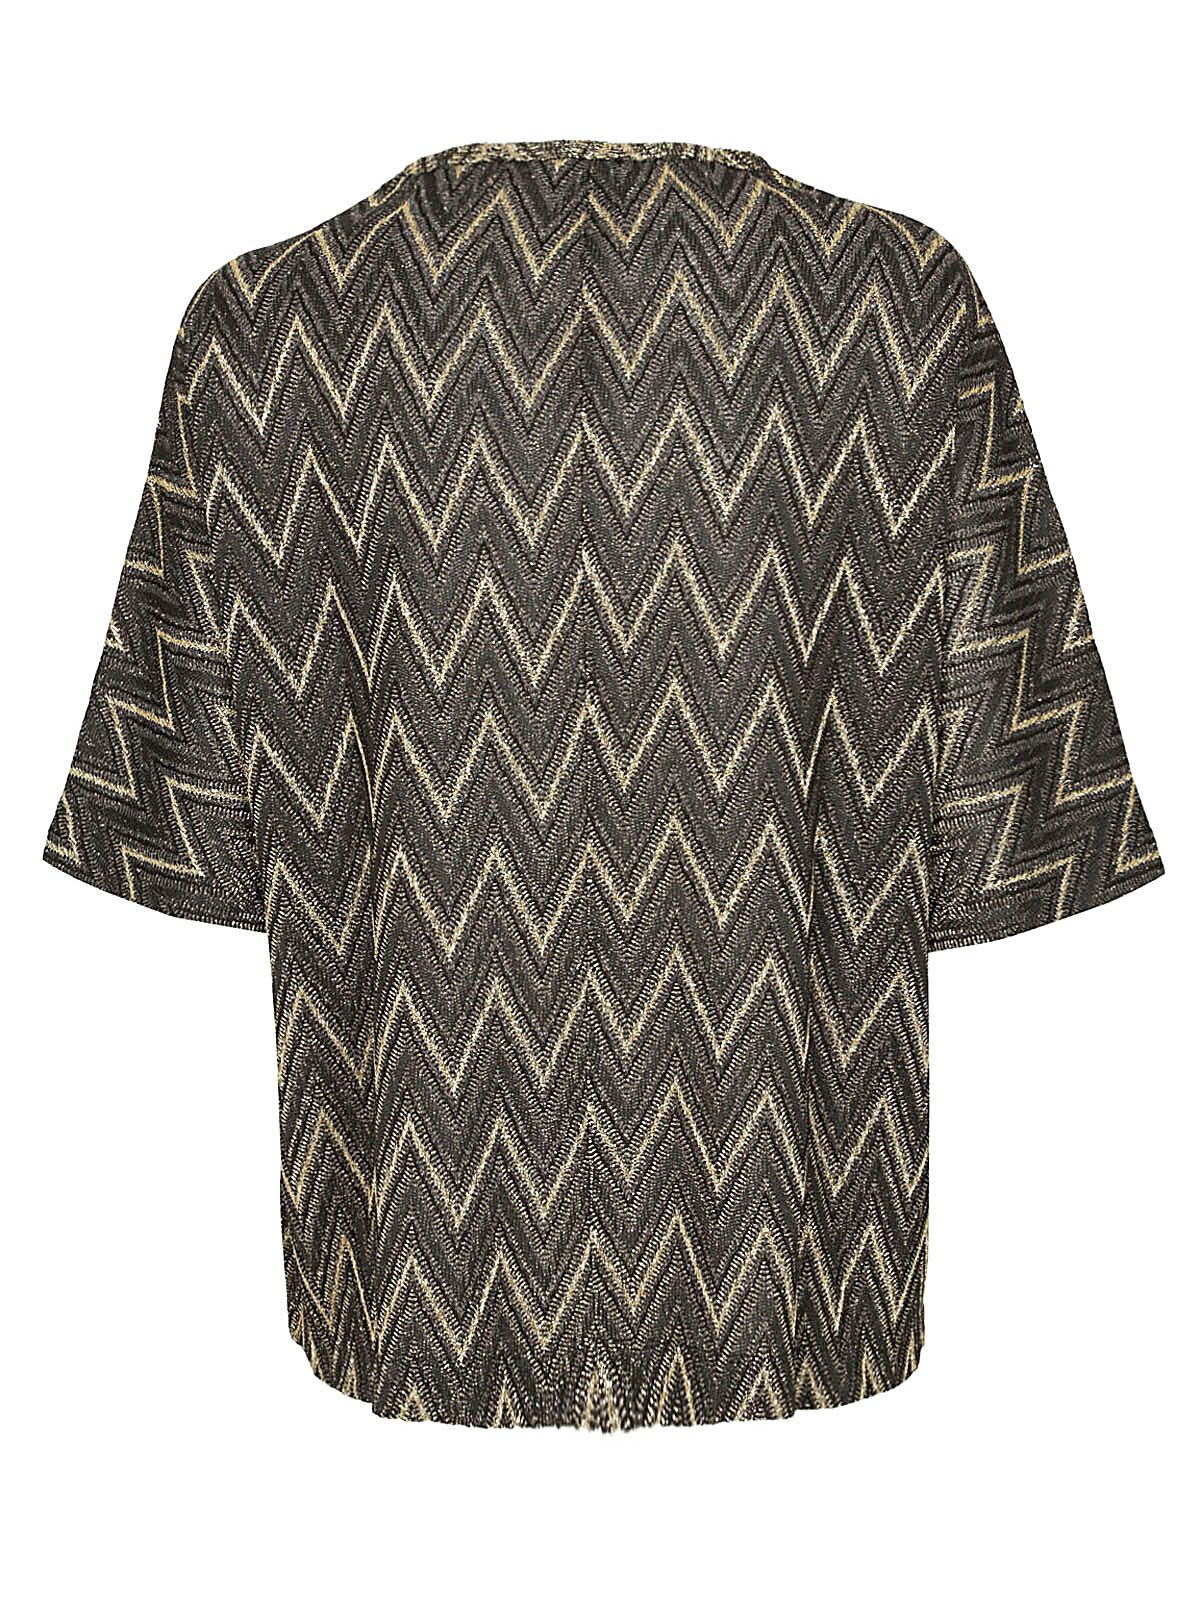 Italist Best Price In The Market For M Missoni Zigzag Blouse Zig Zag Patterned Nero Oro